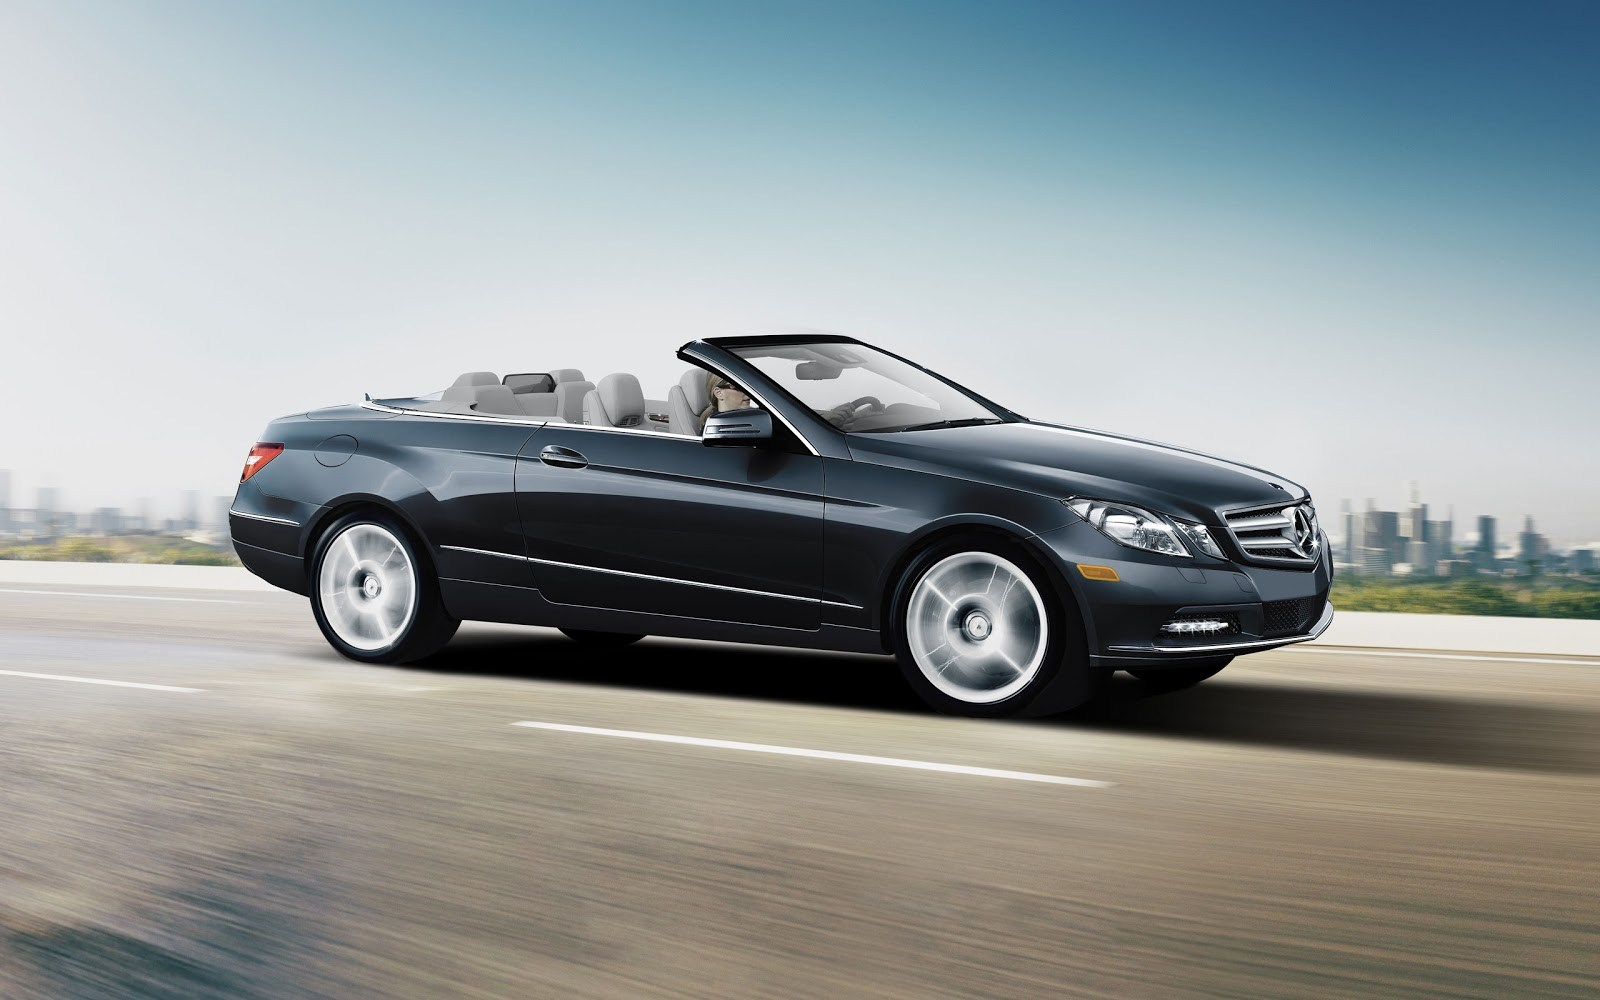 2016 mercedes benz s class convertible hd images 2018 hd cars wallpapers. Black Bedroom Furniture Sets. Home Design Ideas